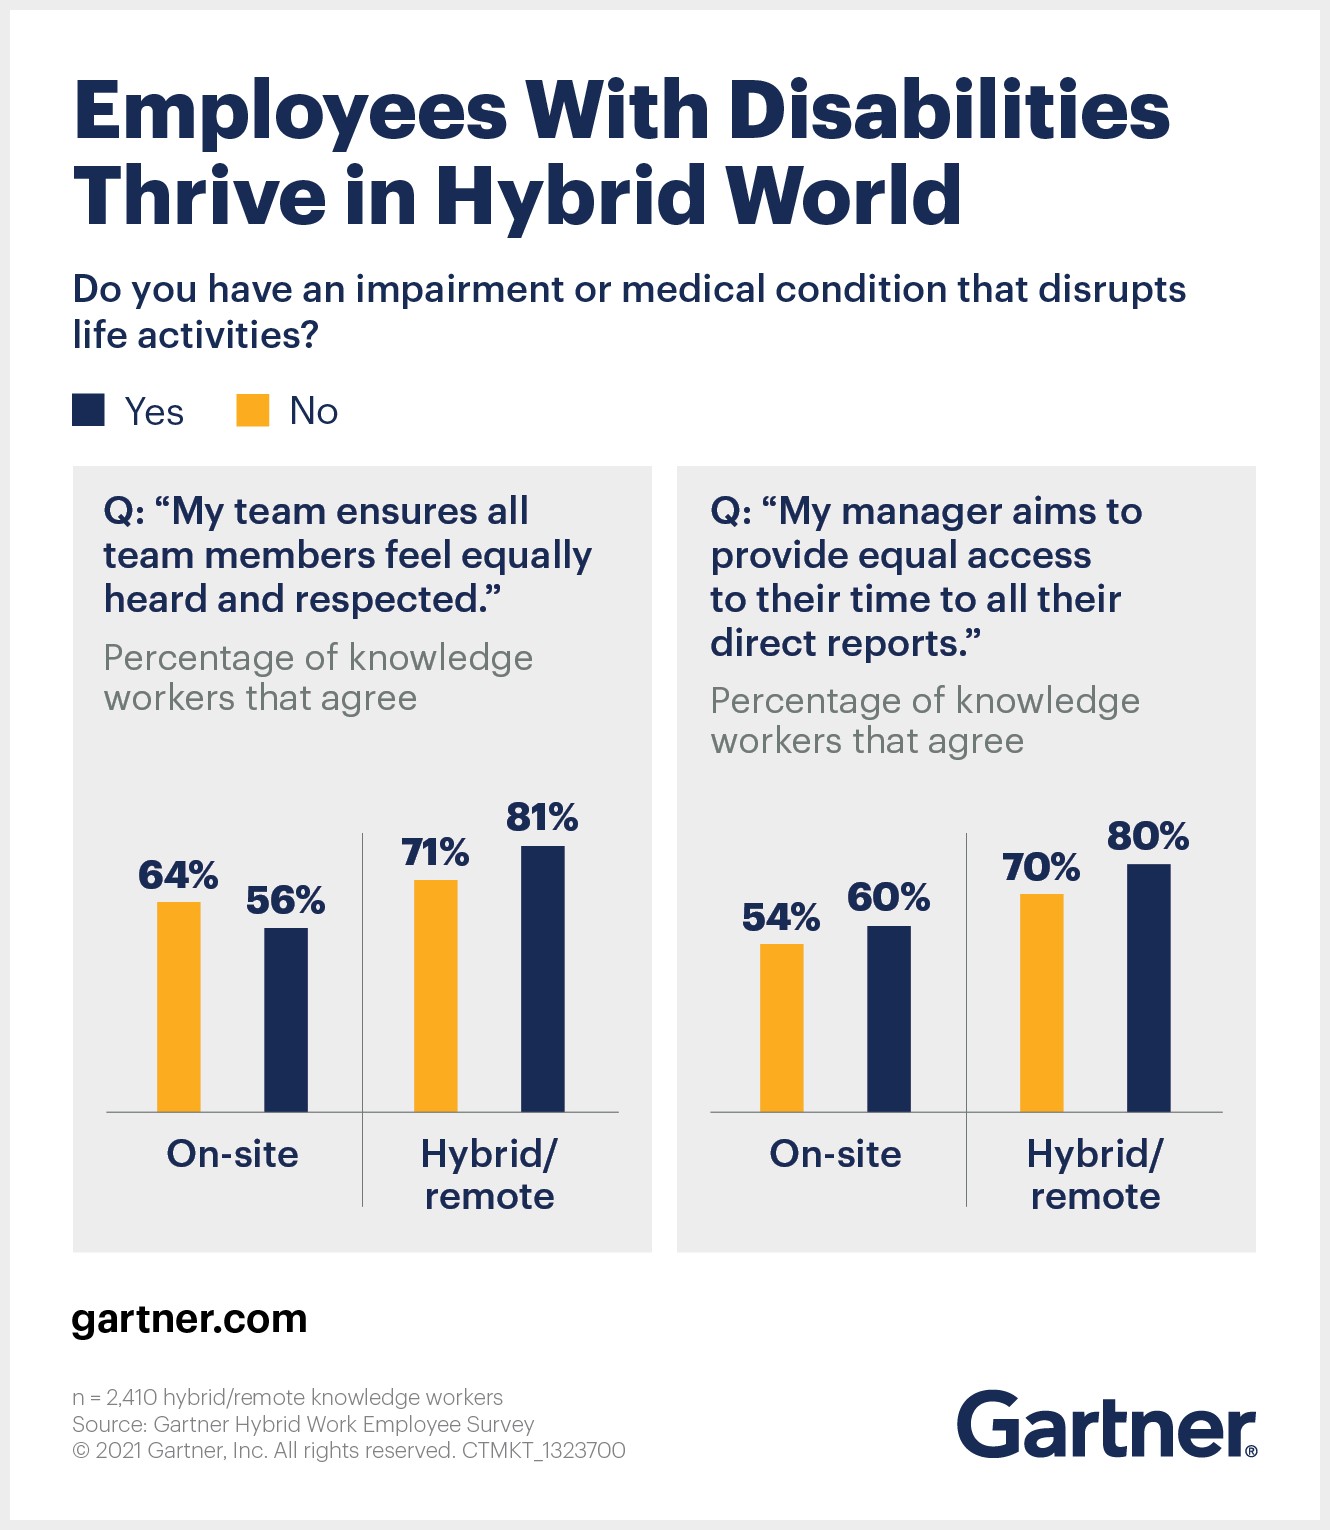 Employees with disabilities thrive in a hybrid world